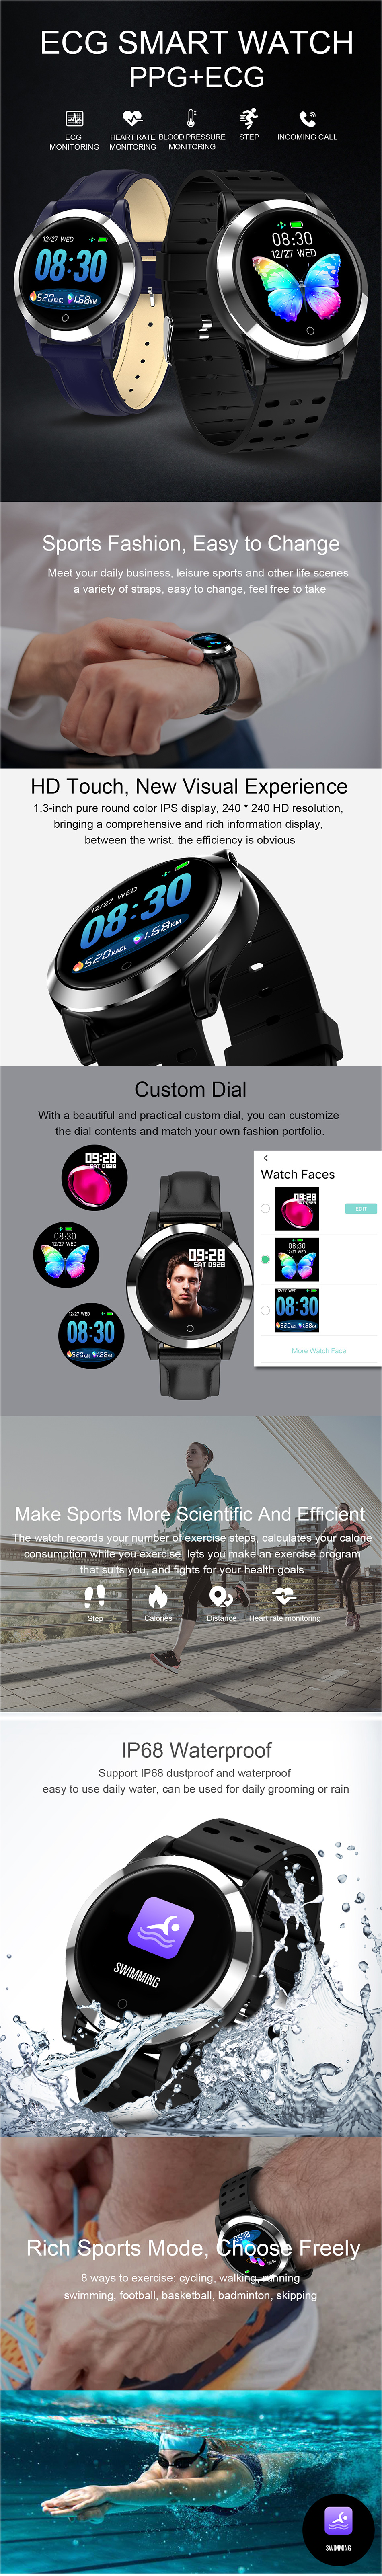 Bakeey R19 ECG+PPG 1.3inch HD Display IP68 Waterproof HR Blood Pressure Oxygen Monitor Sport Smart Watch